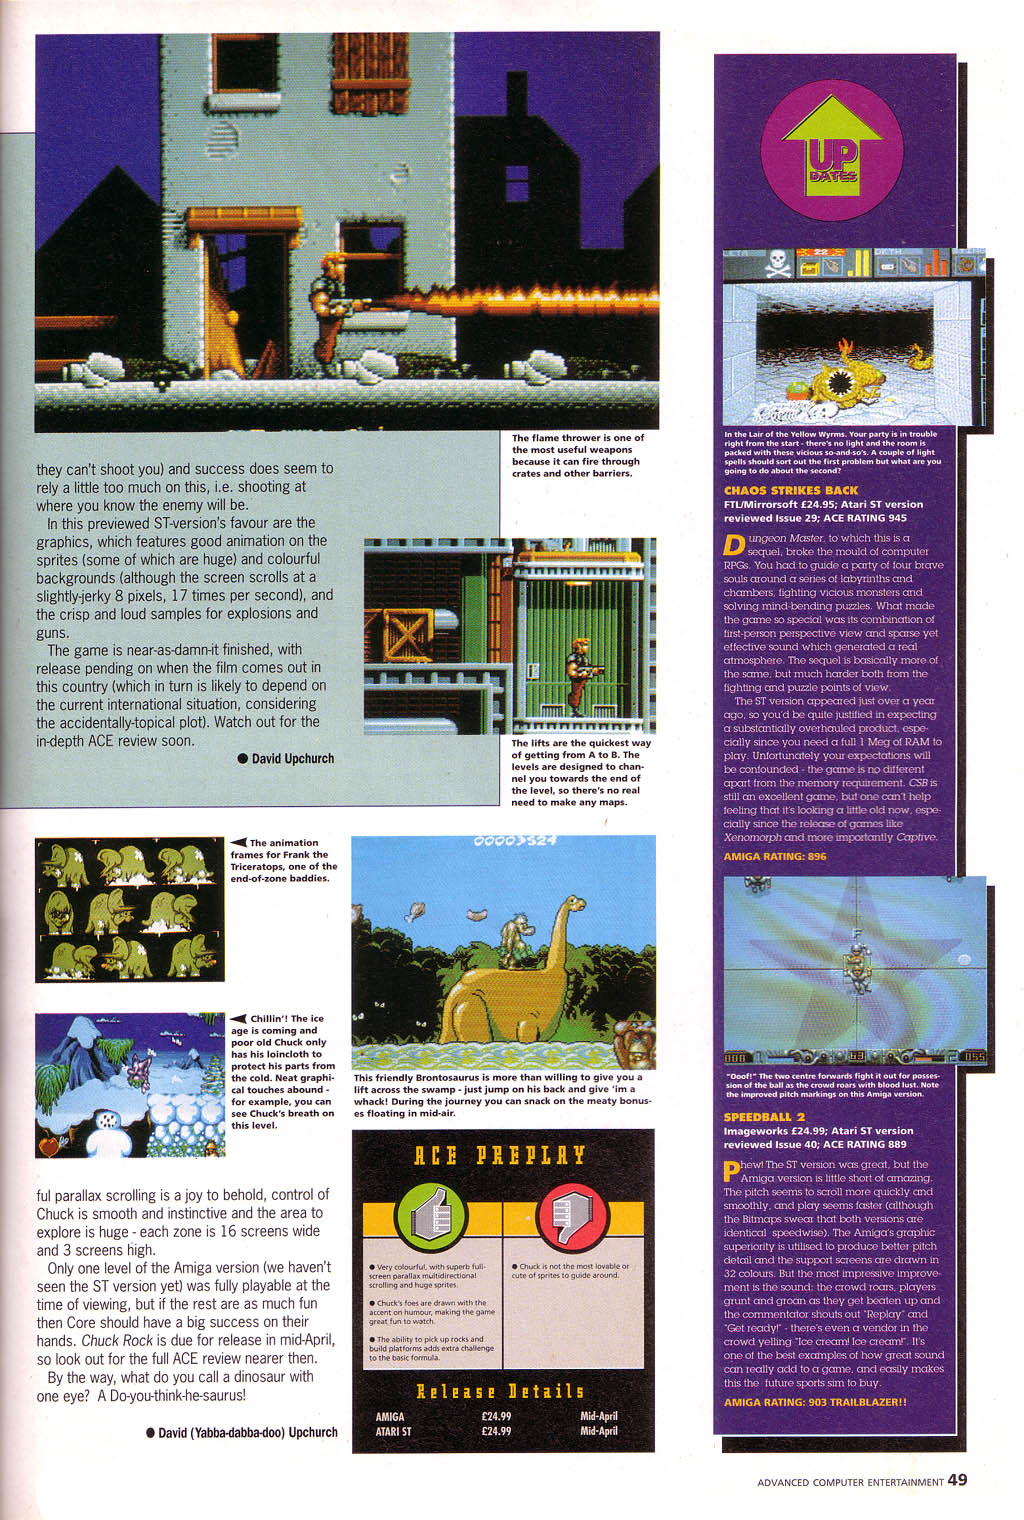 Chaos Strikes Back for Amiga Review published in British magazine 'Advanced Computer Entertainment (ACE)', Issue #43, April 1991, Page 49